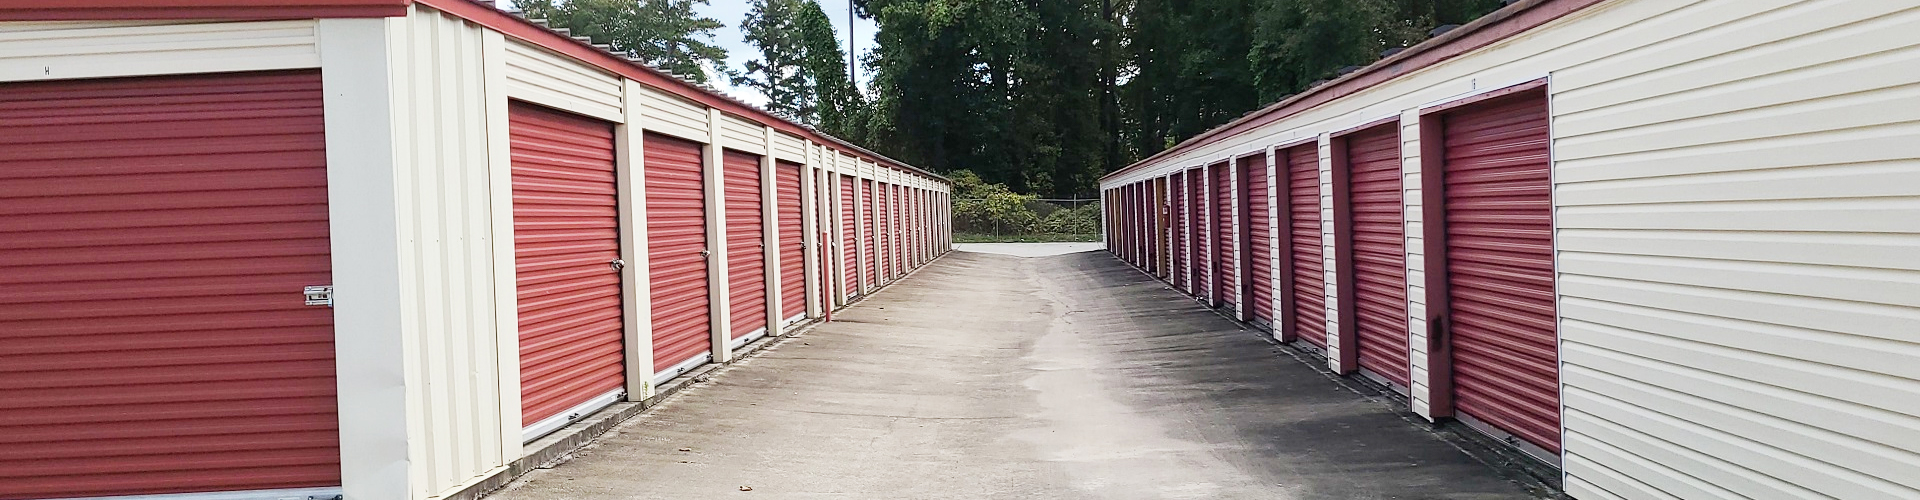 Storage Units in Douglasville GA